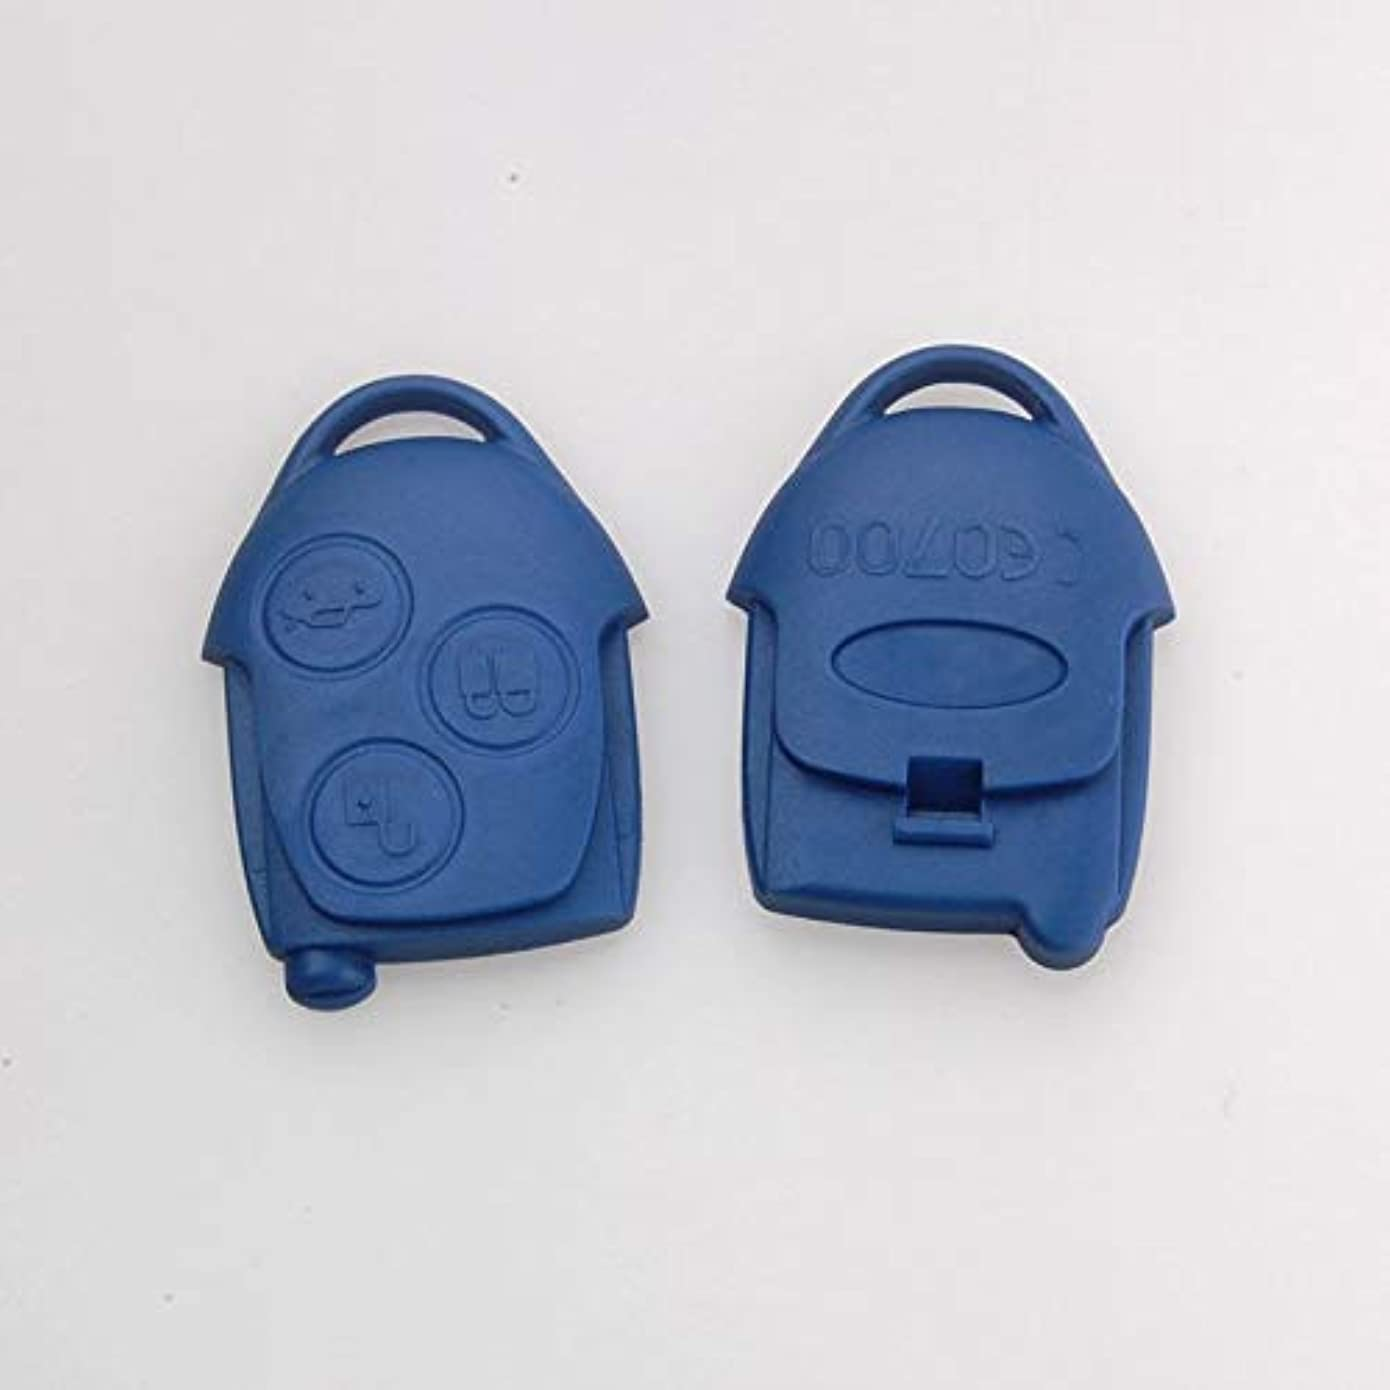 悲劇アンビエント故障Jicorzo - Replacement Transit Connect 3 Buttons Blue Blank Remote Key Case Shell Fit For Ford TRANSIT